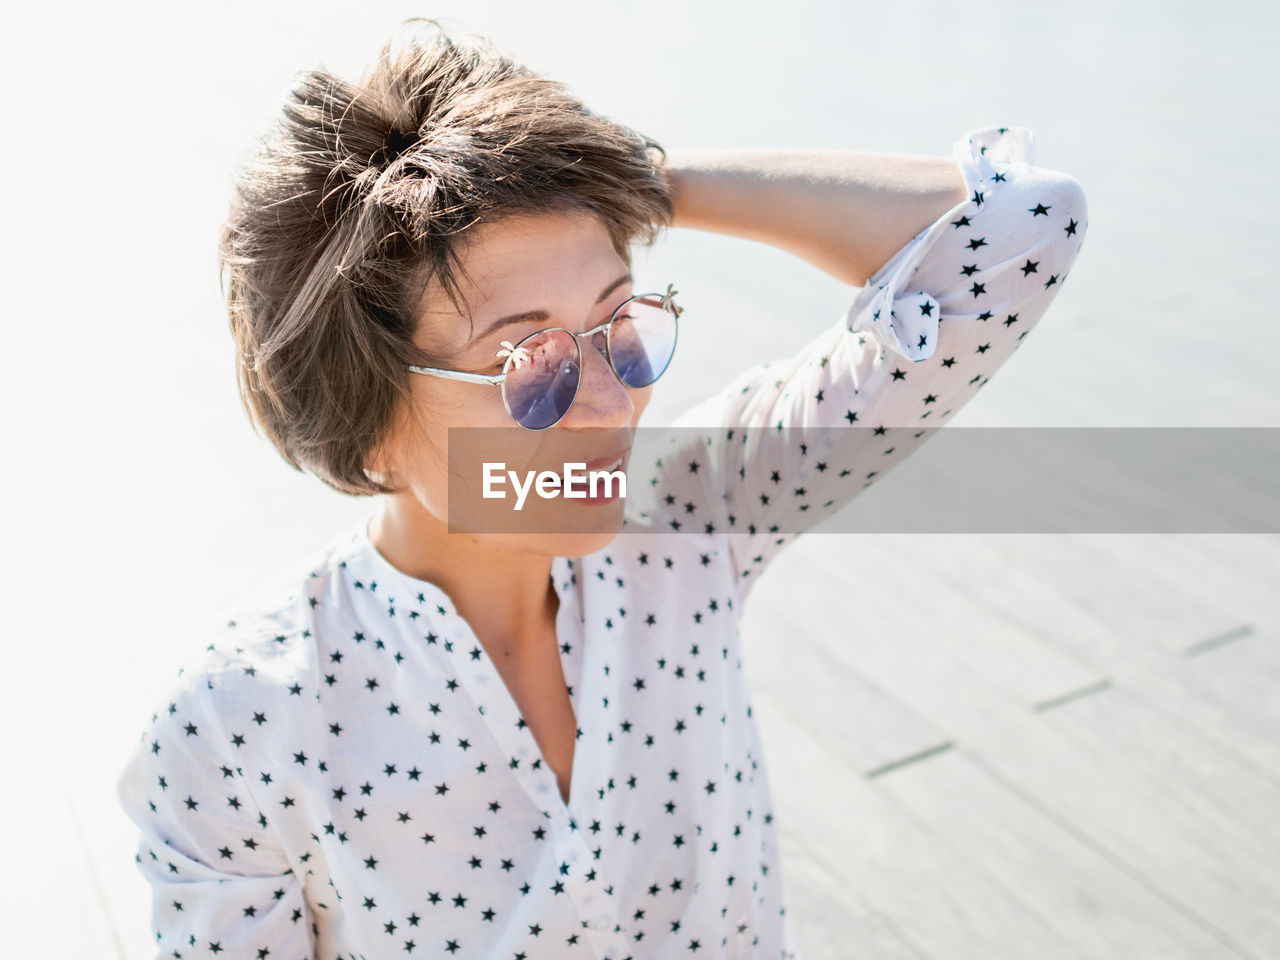 Wind ruffles short hair of freckled woman in colorful sunglasses. smiling woman. summer vibes.